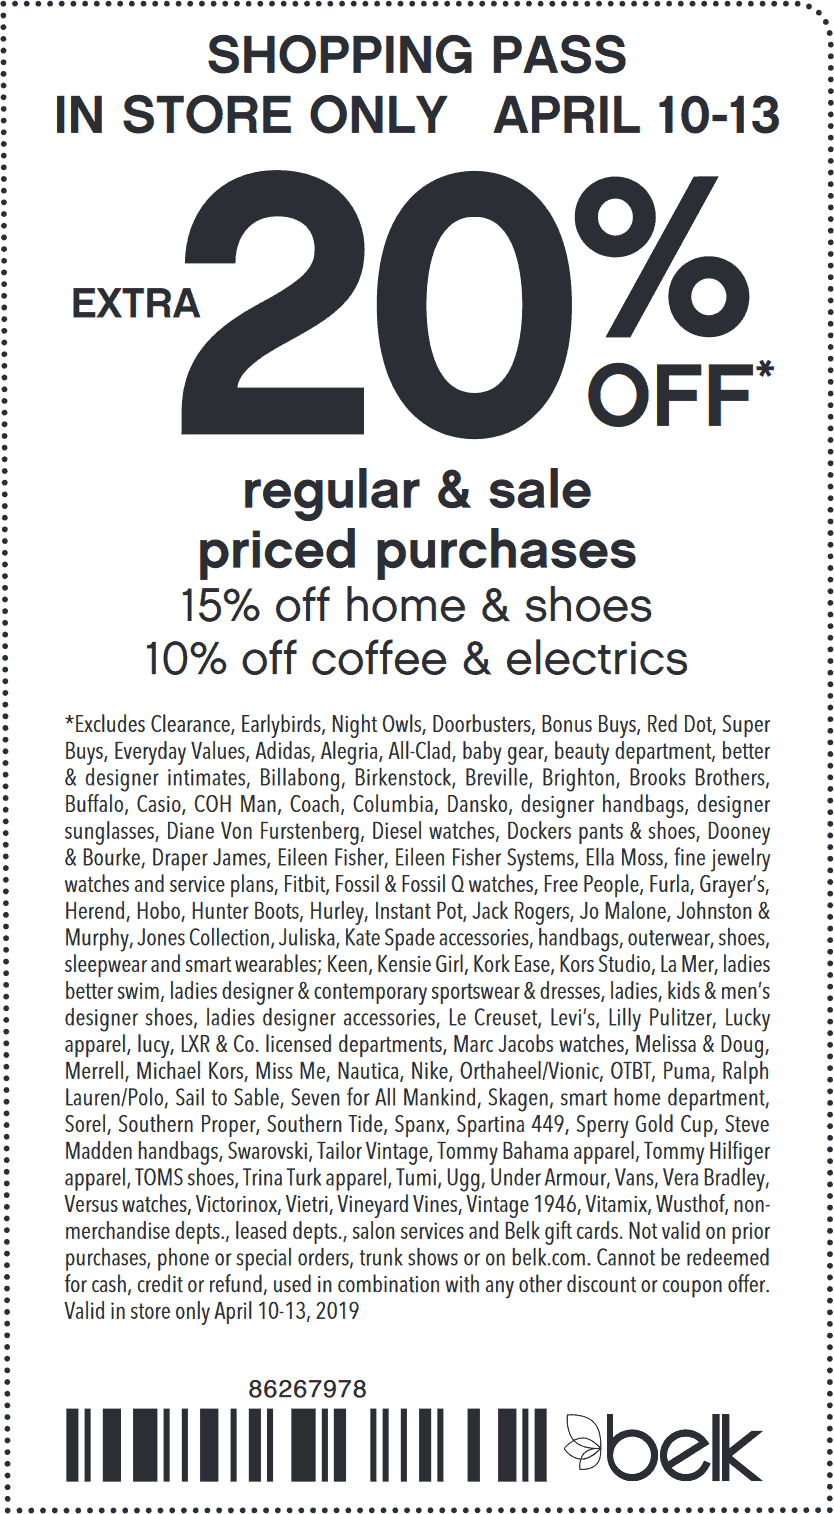 Belk Coupon July 2019 Extra 20% off at Belk